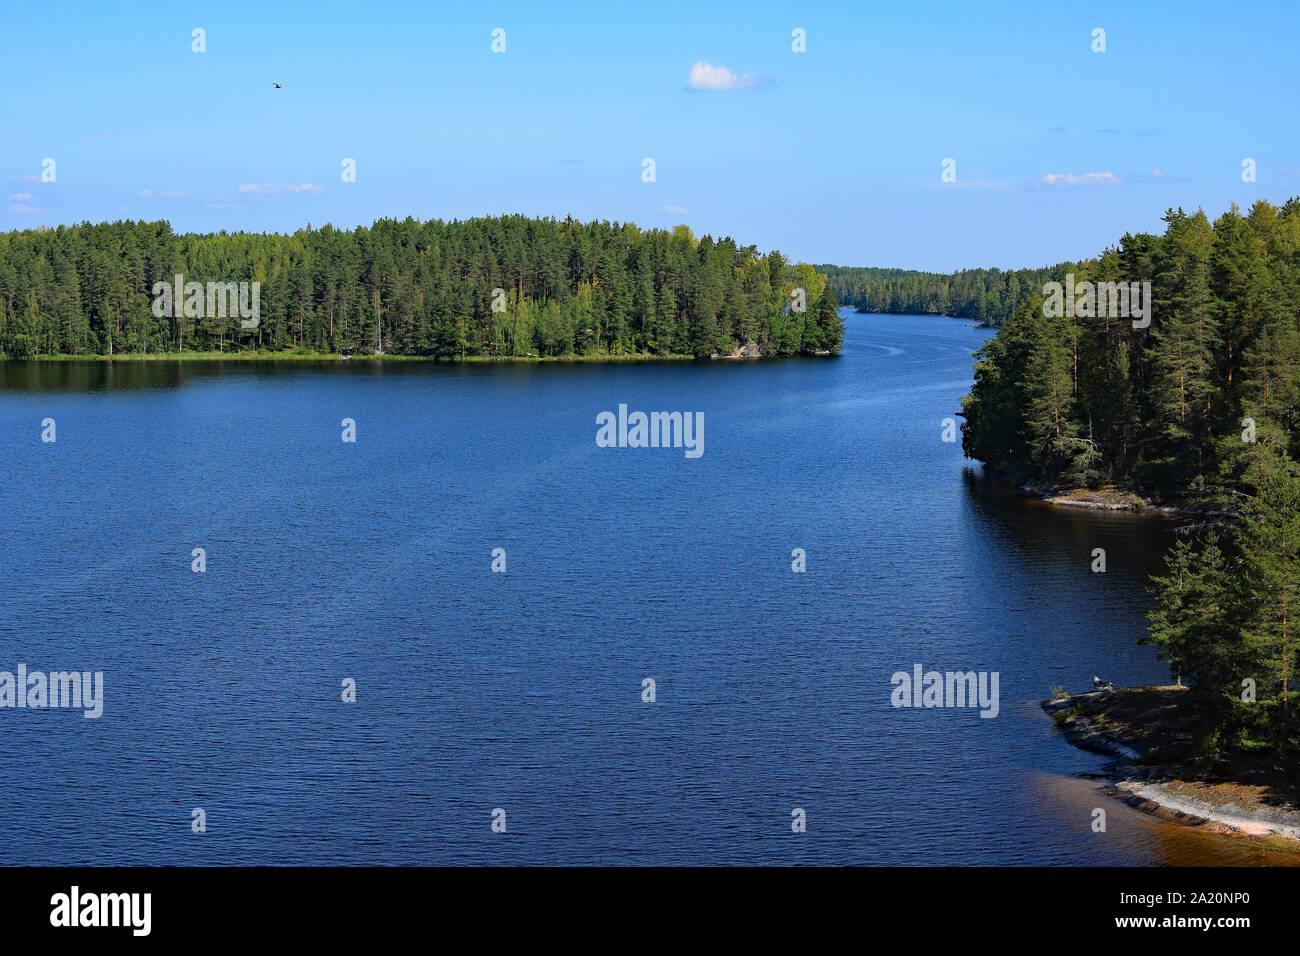 Lake Saimaa from Toijansalmi bridge, Taipalsaari, Finland. Stock Photo